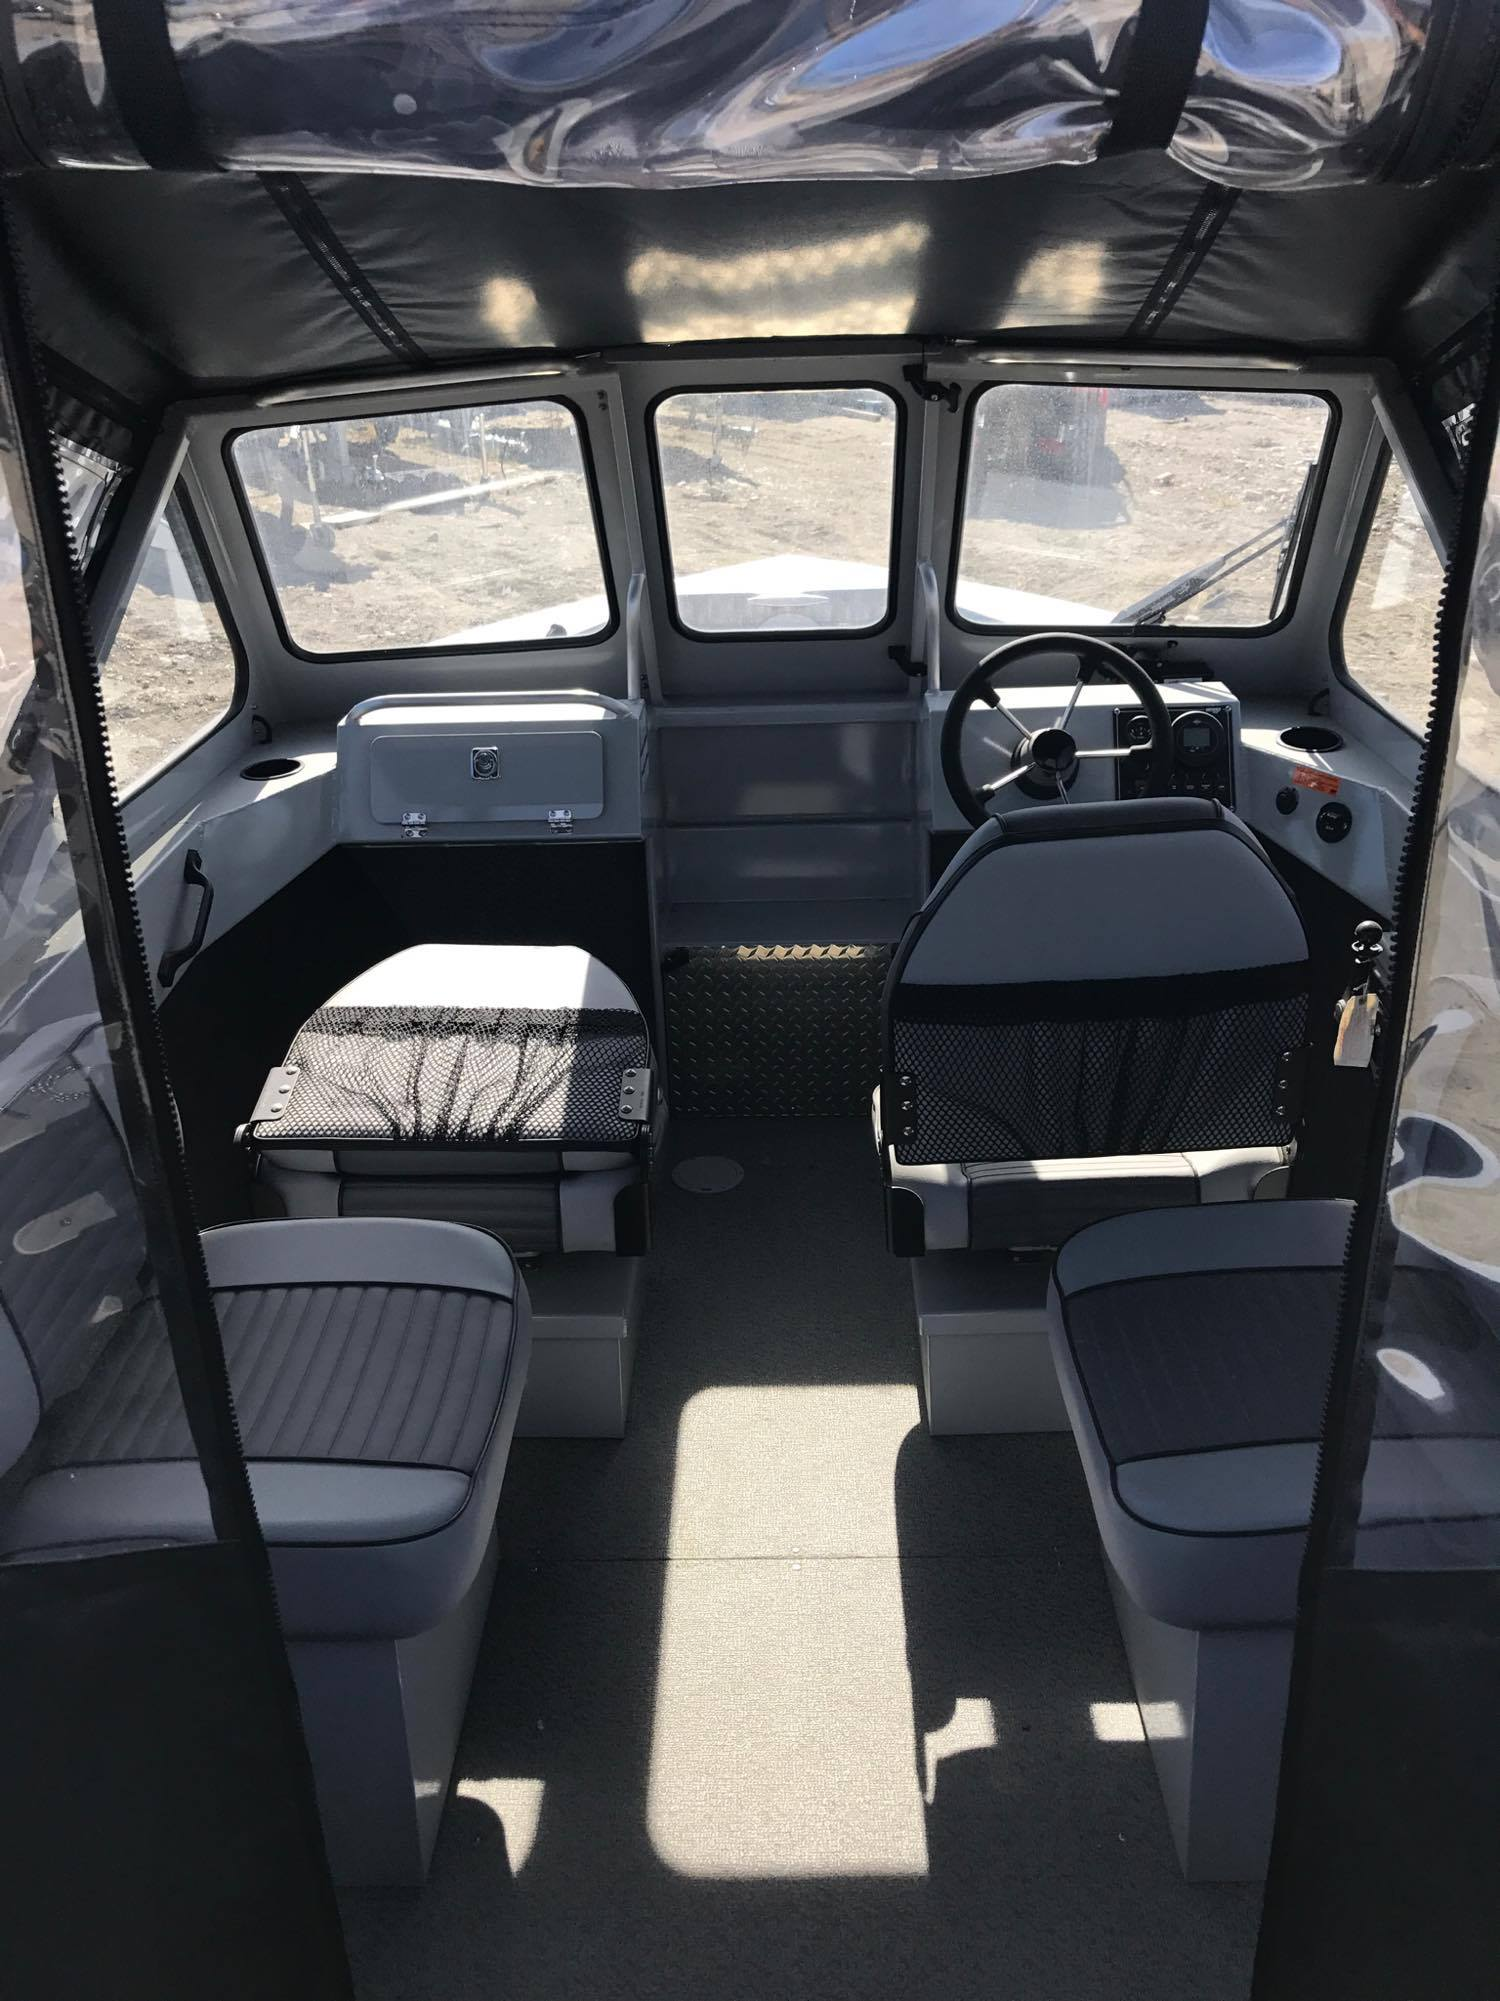 Hewes Craft 2018 -DEMO- 190 Sea Runner, w/ Extended Transom - Extras, 9 9HP  Kicker, Scotty Down Riggers (2), VHF, Garmin GPS/Sounder